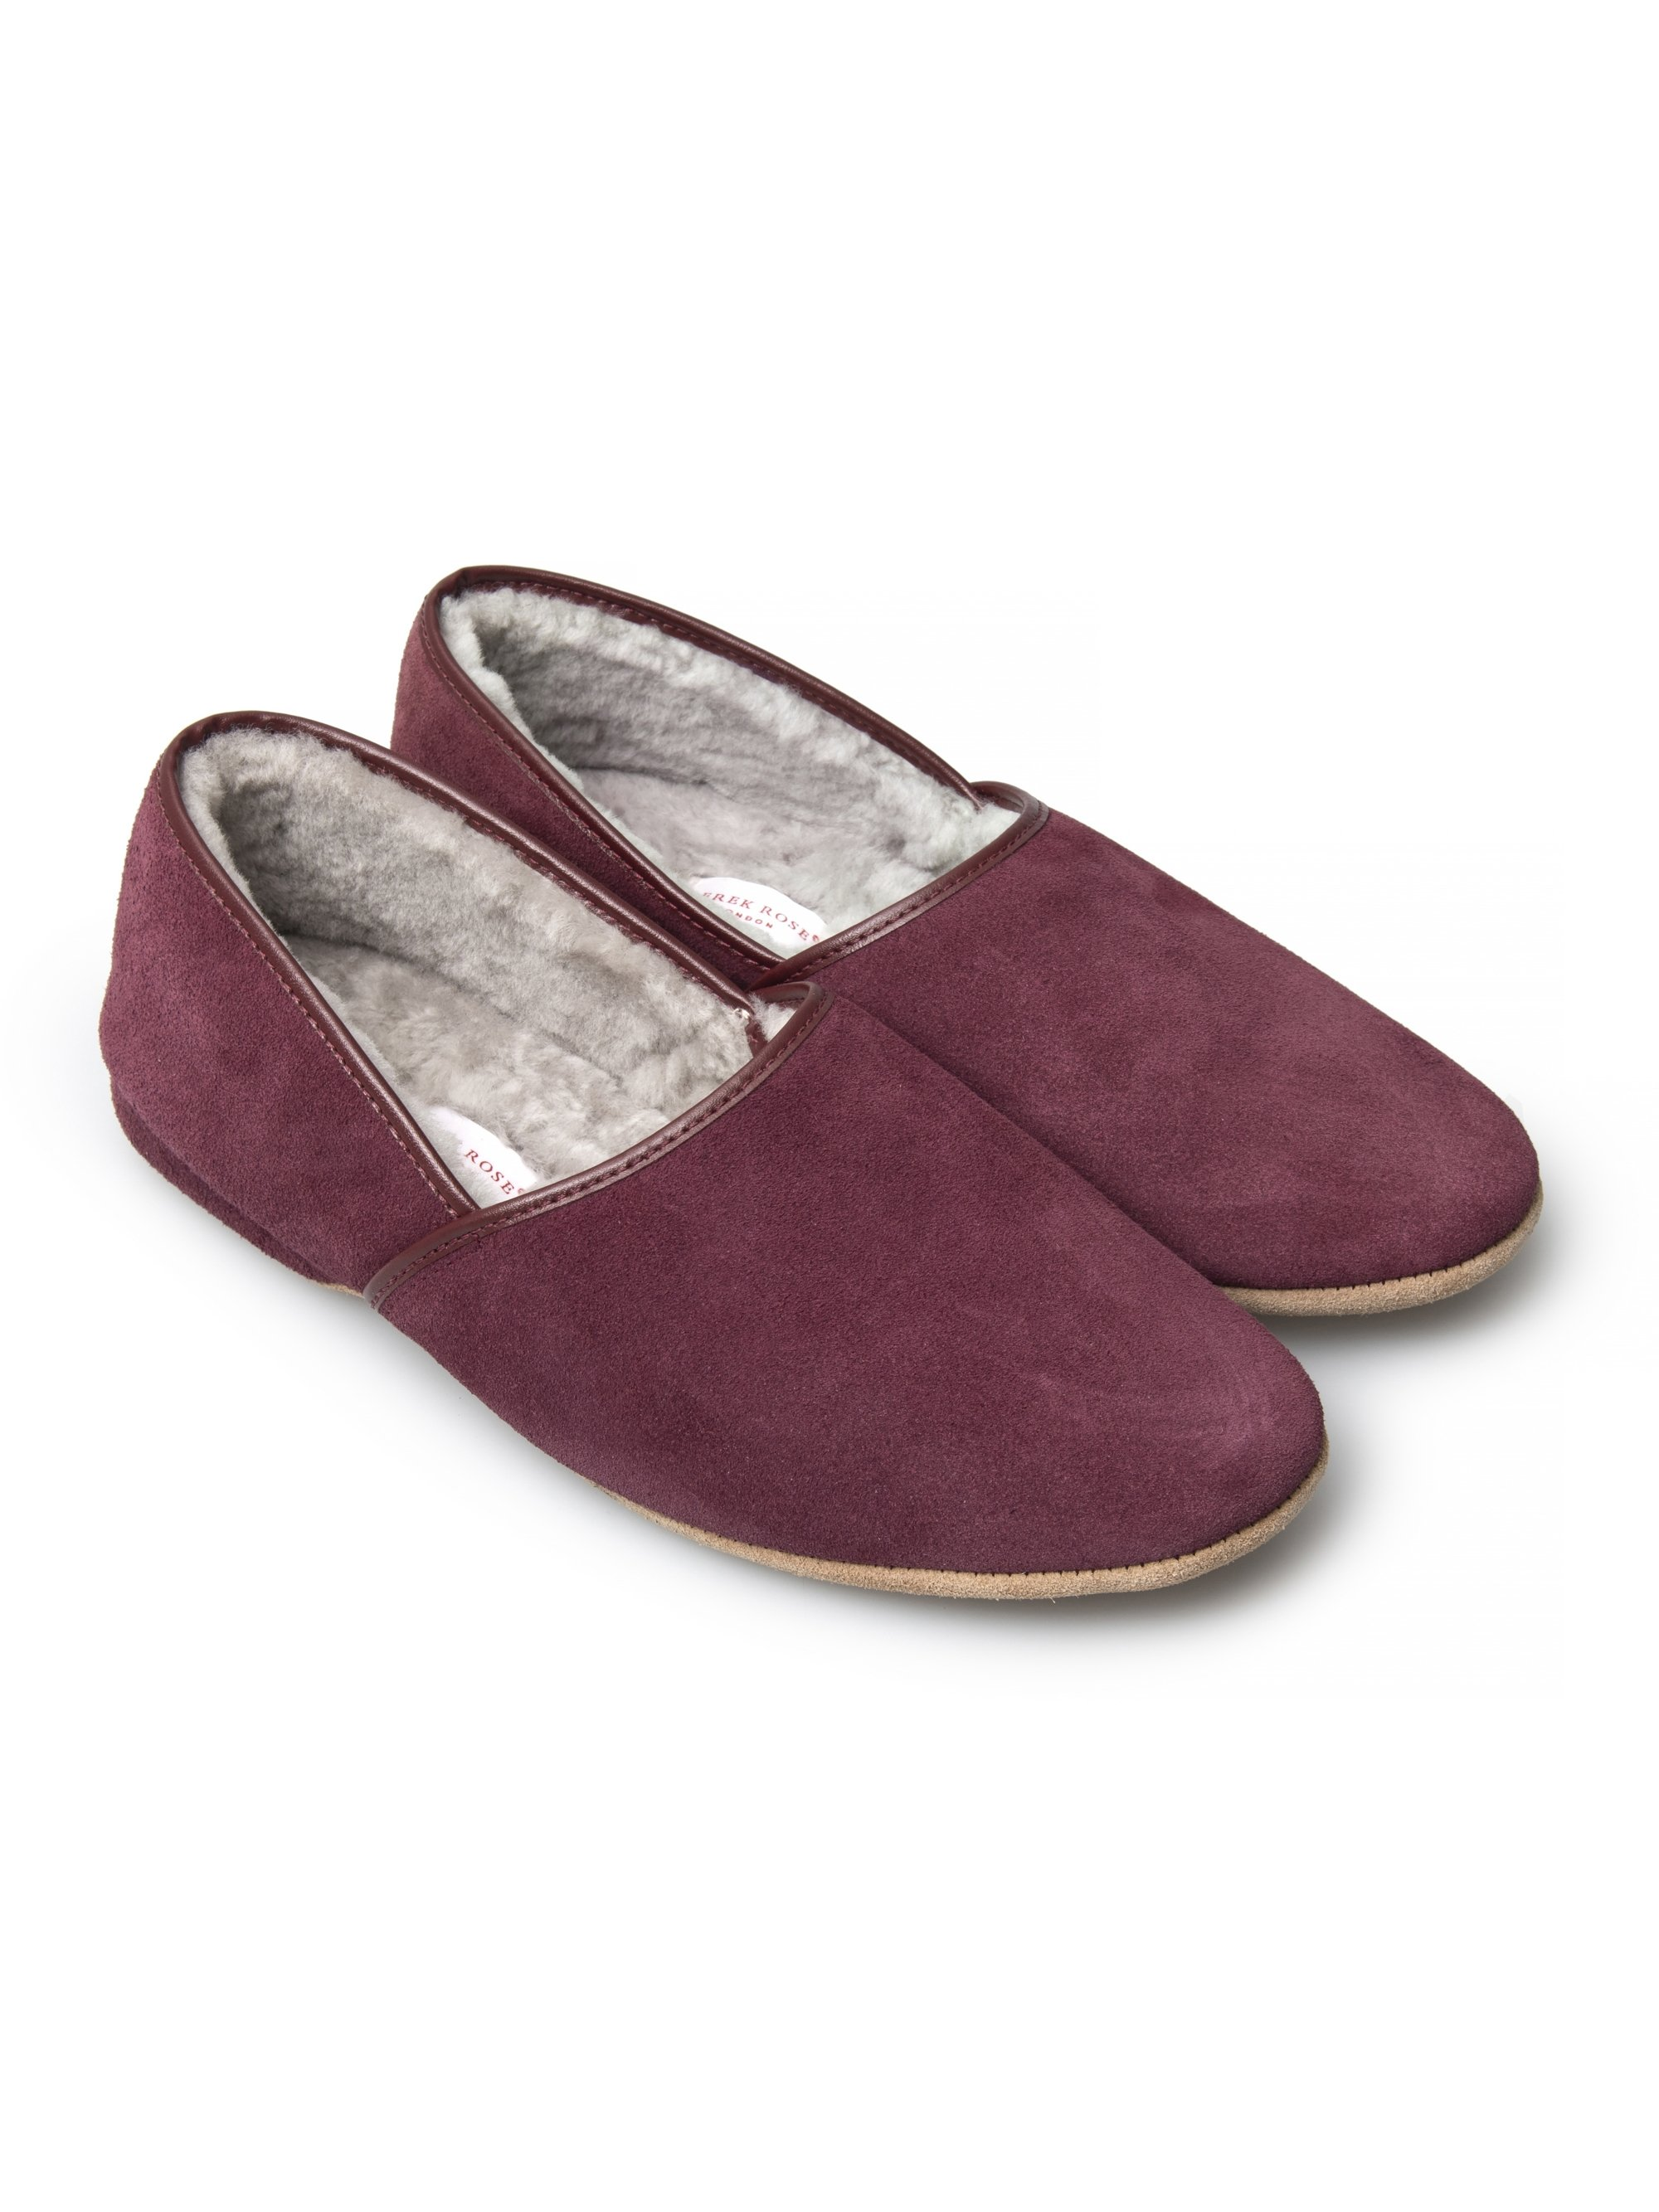 Men's Closed-Back Slipper Crawford Suede Sheepskin Bordeaux